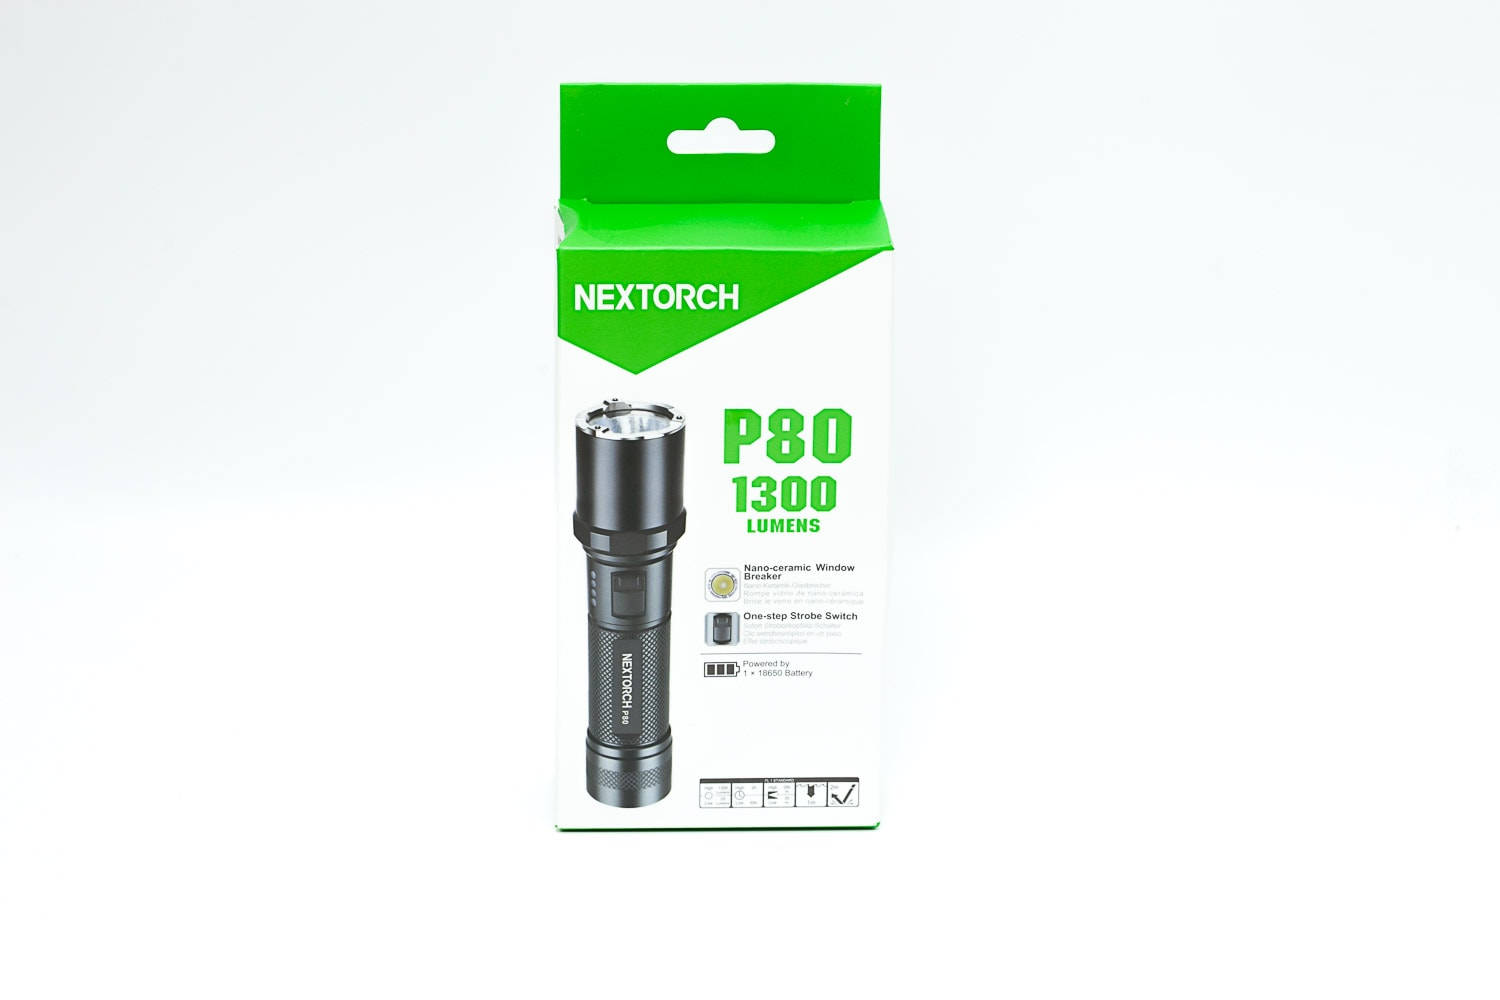 Nextorch P80 package